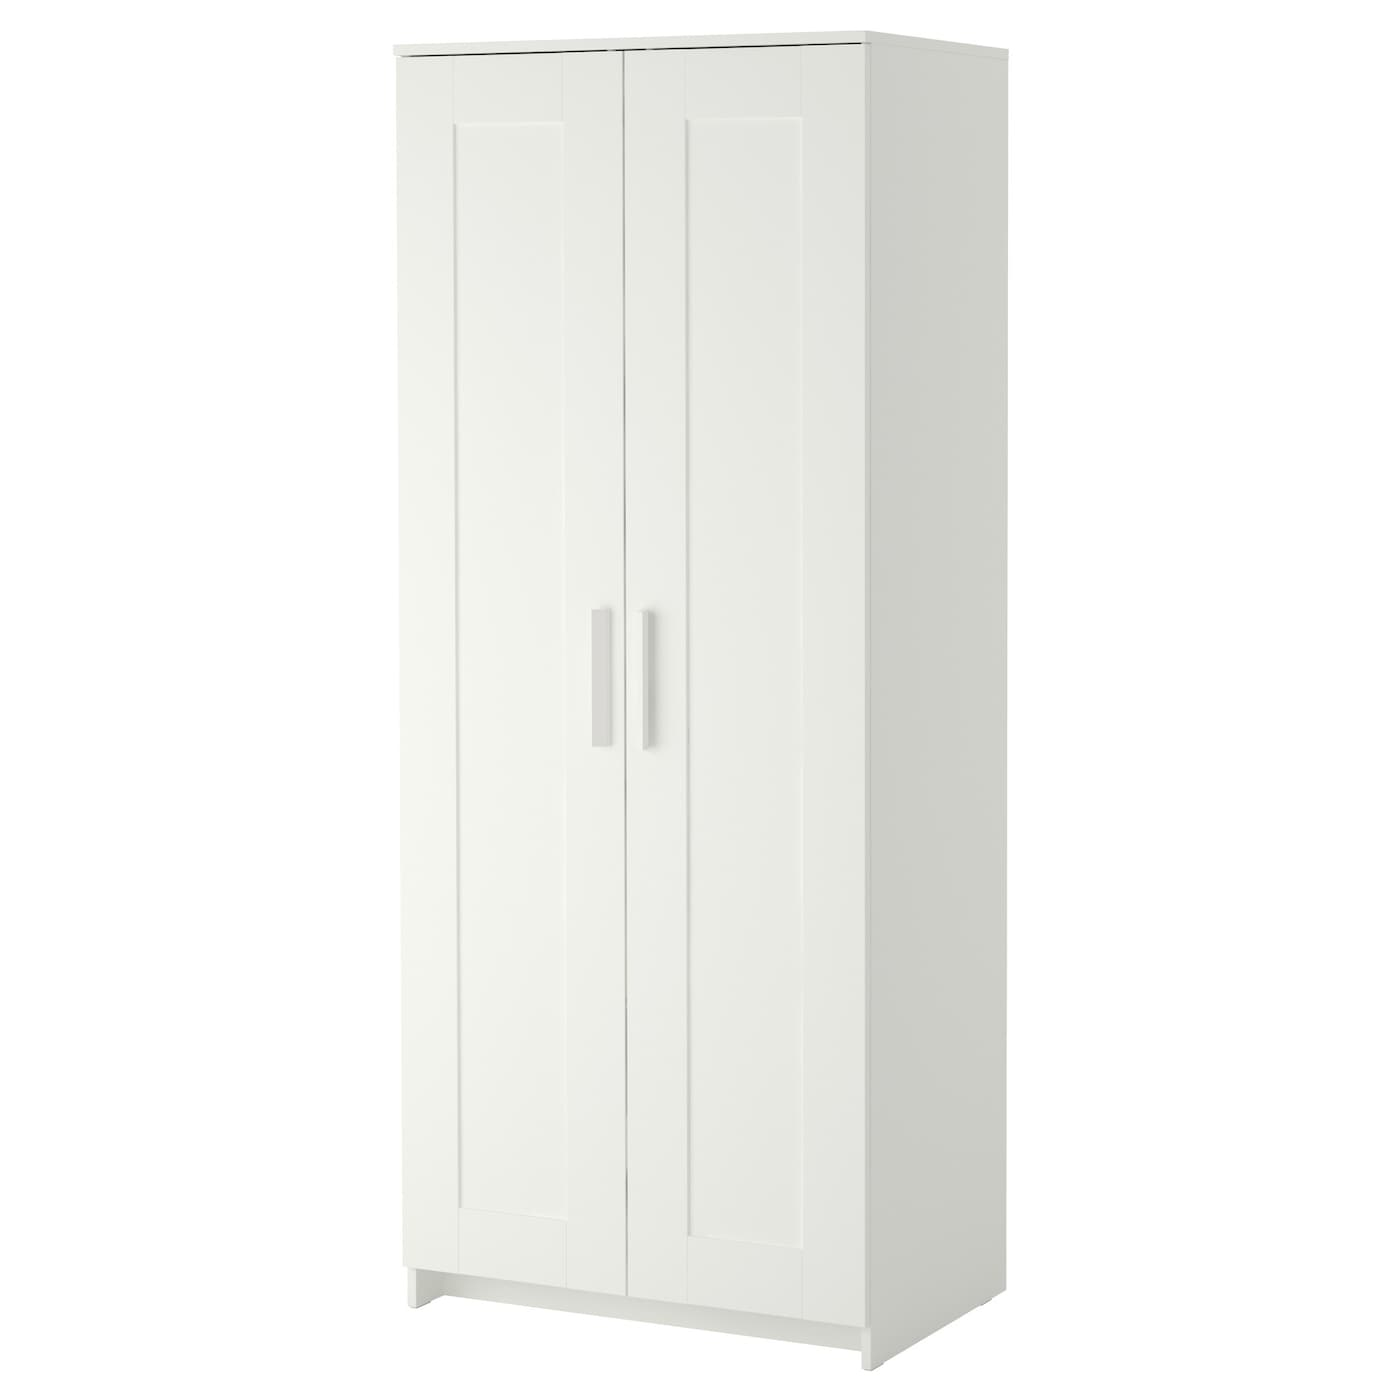 Brimnes wardrobe with 2 doors white 78x190 cm ikea for Sideboard 2 m breit